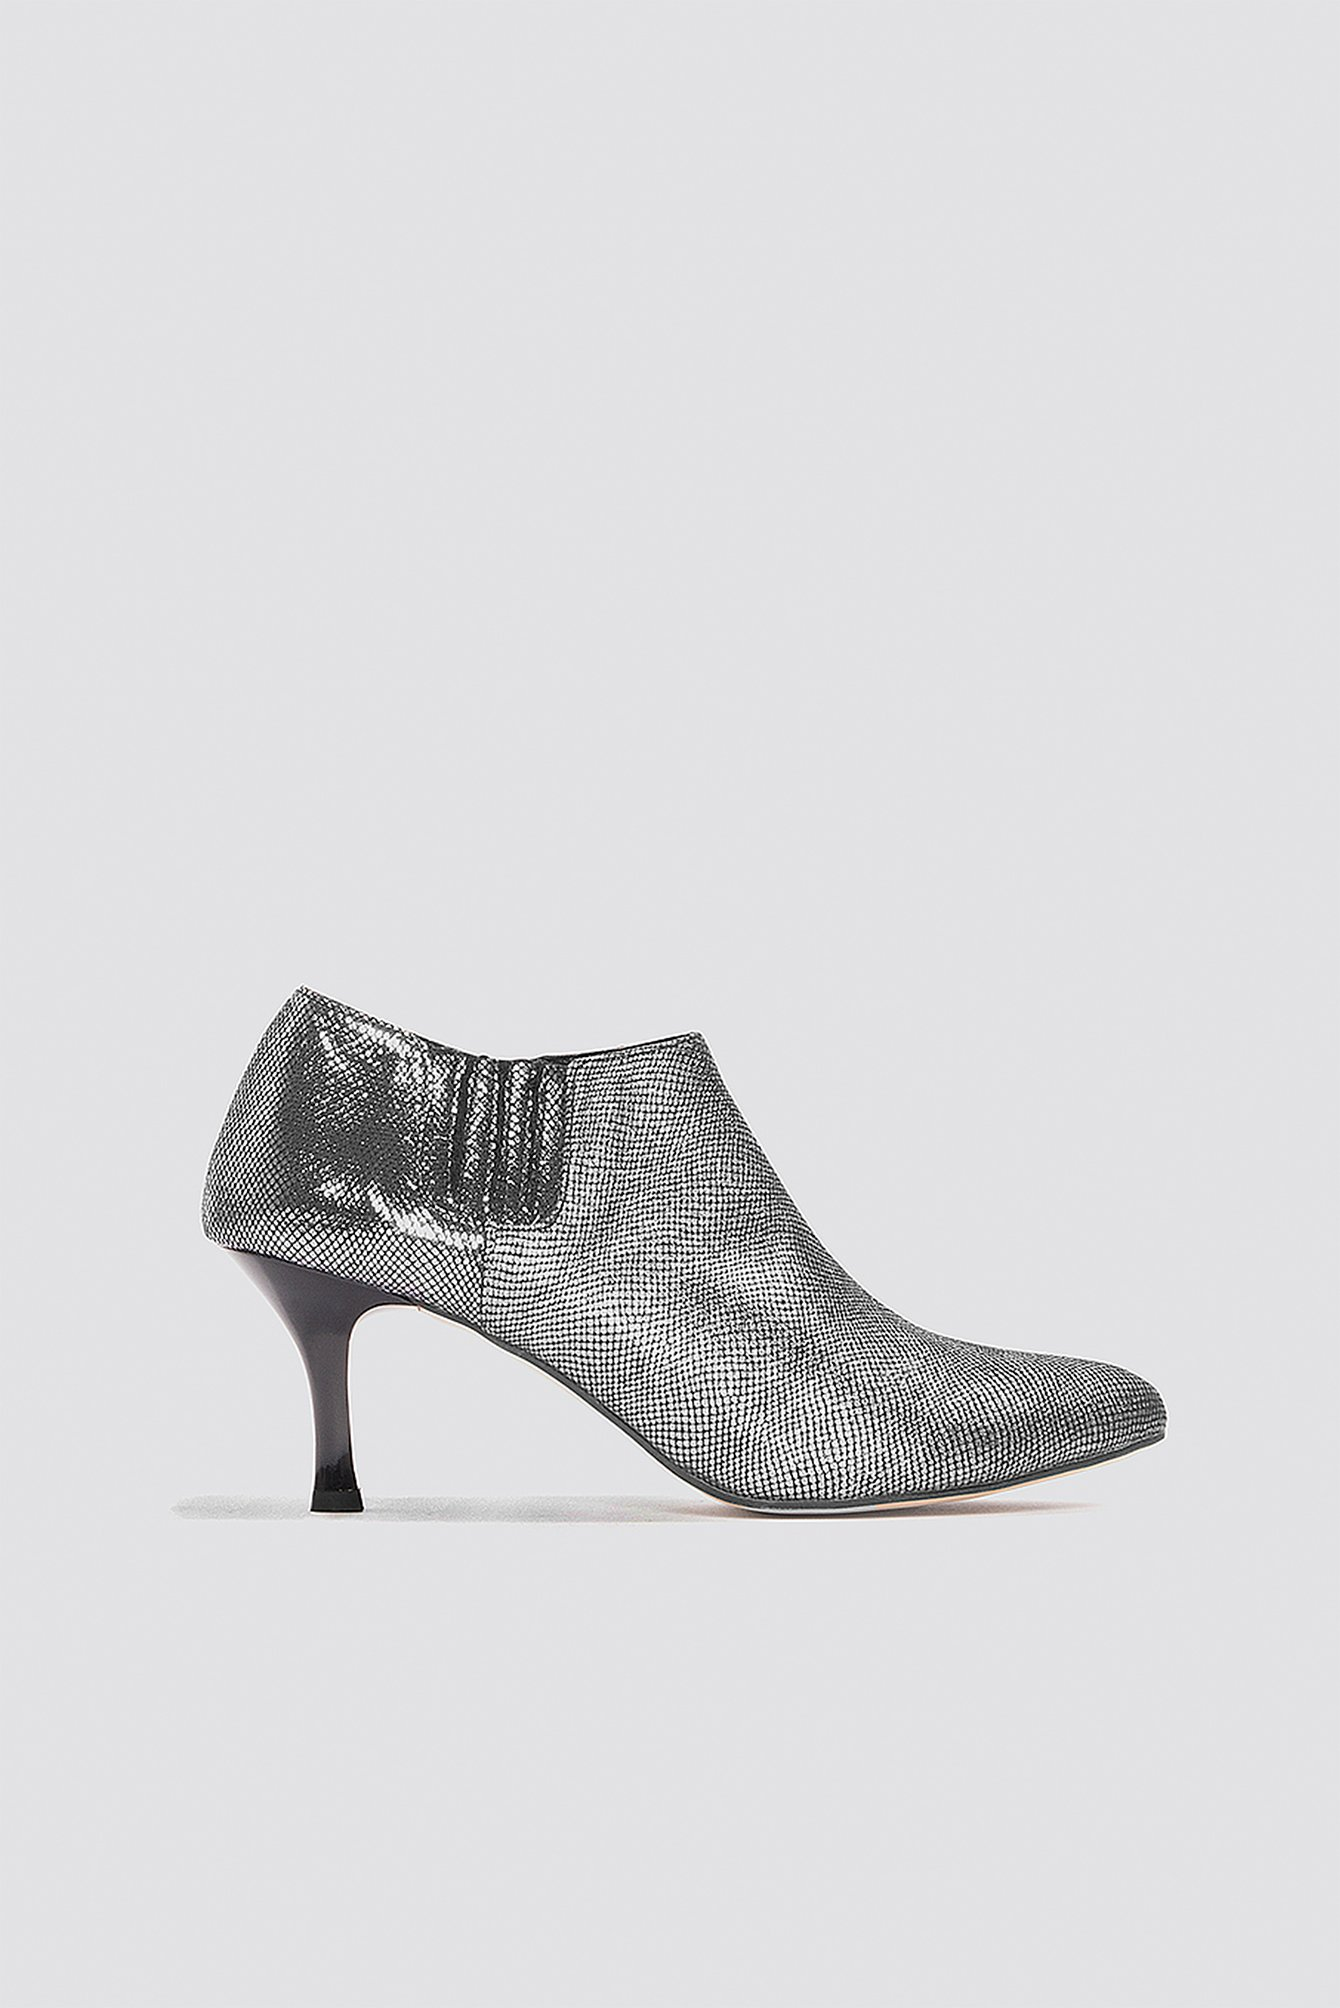 METALLIC ANKLE BOOT - SILVER